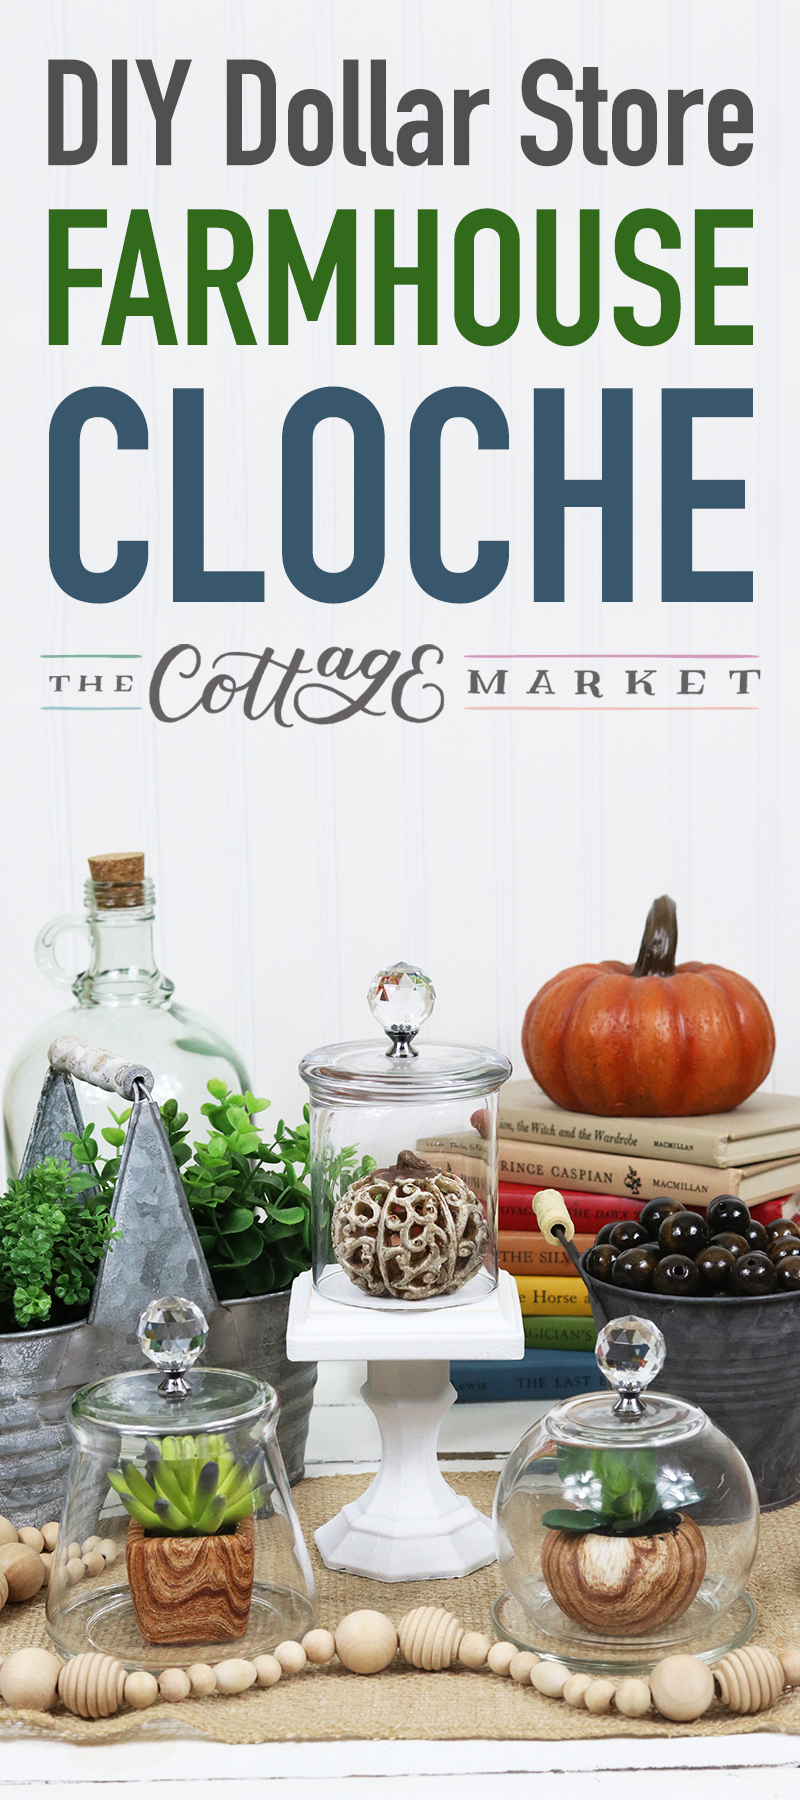 https://thecottagemarket.com/wp-content/uploads/2019/09/cloche-11.jpg